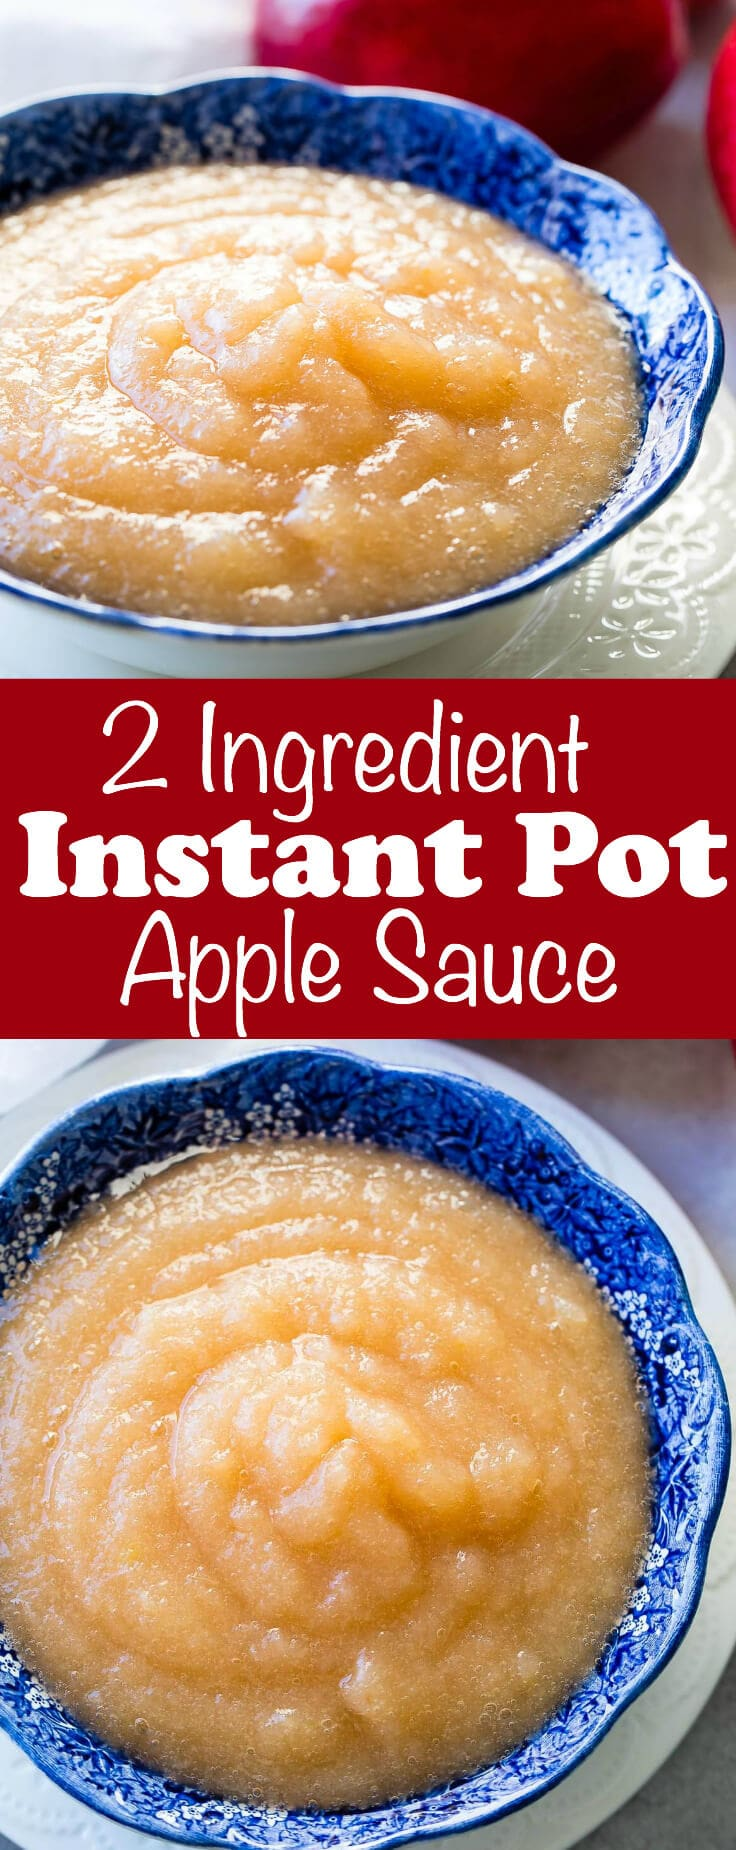 A while back I shared our 2 ingredient instant pot applesauce recipe on an instagram story and now I'm sharing it here along with how to can applesauce.